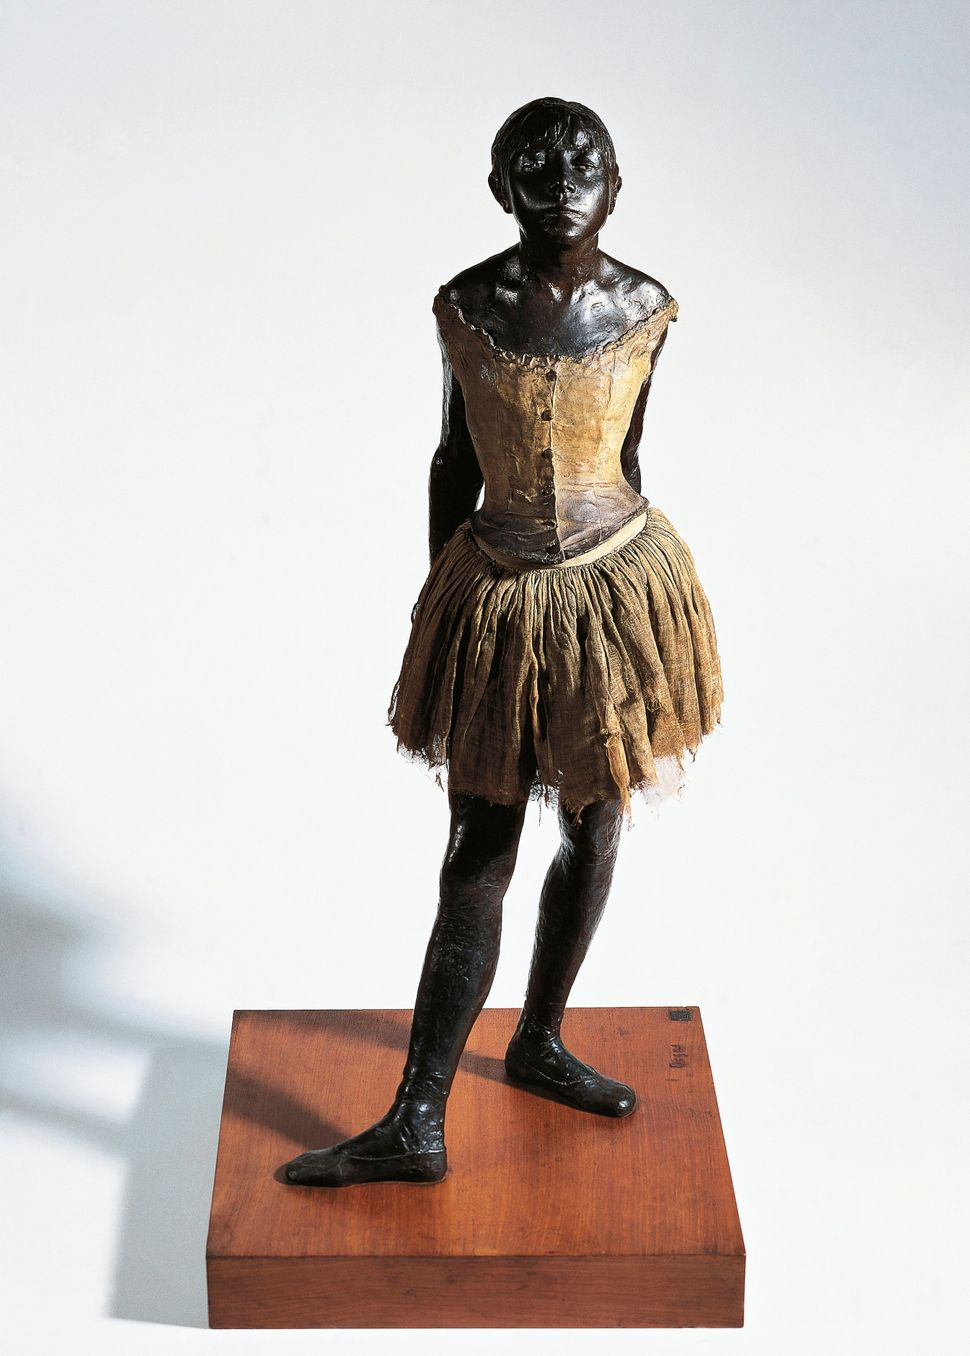 Author Camille Laurens explores the relationship between Degas and van Goethem in her book <i>Little Dancer Aged Fourtee